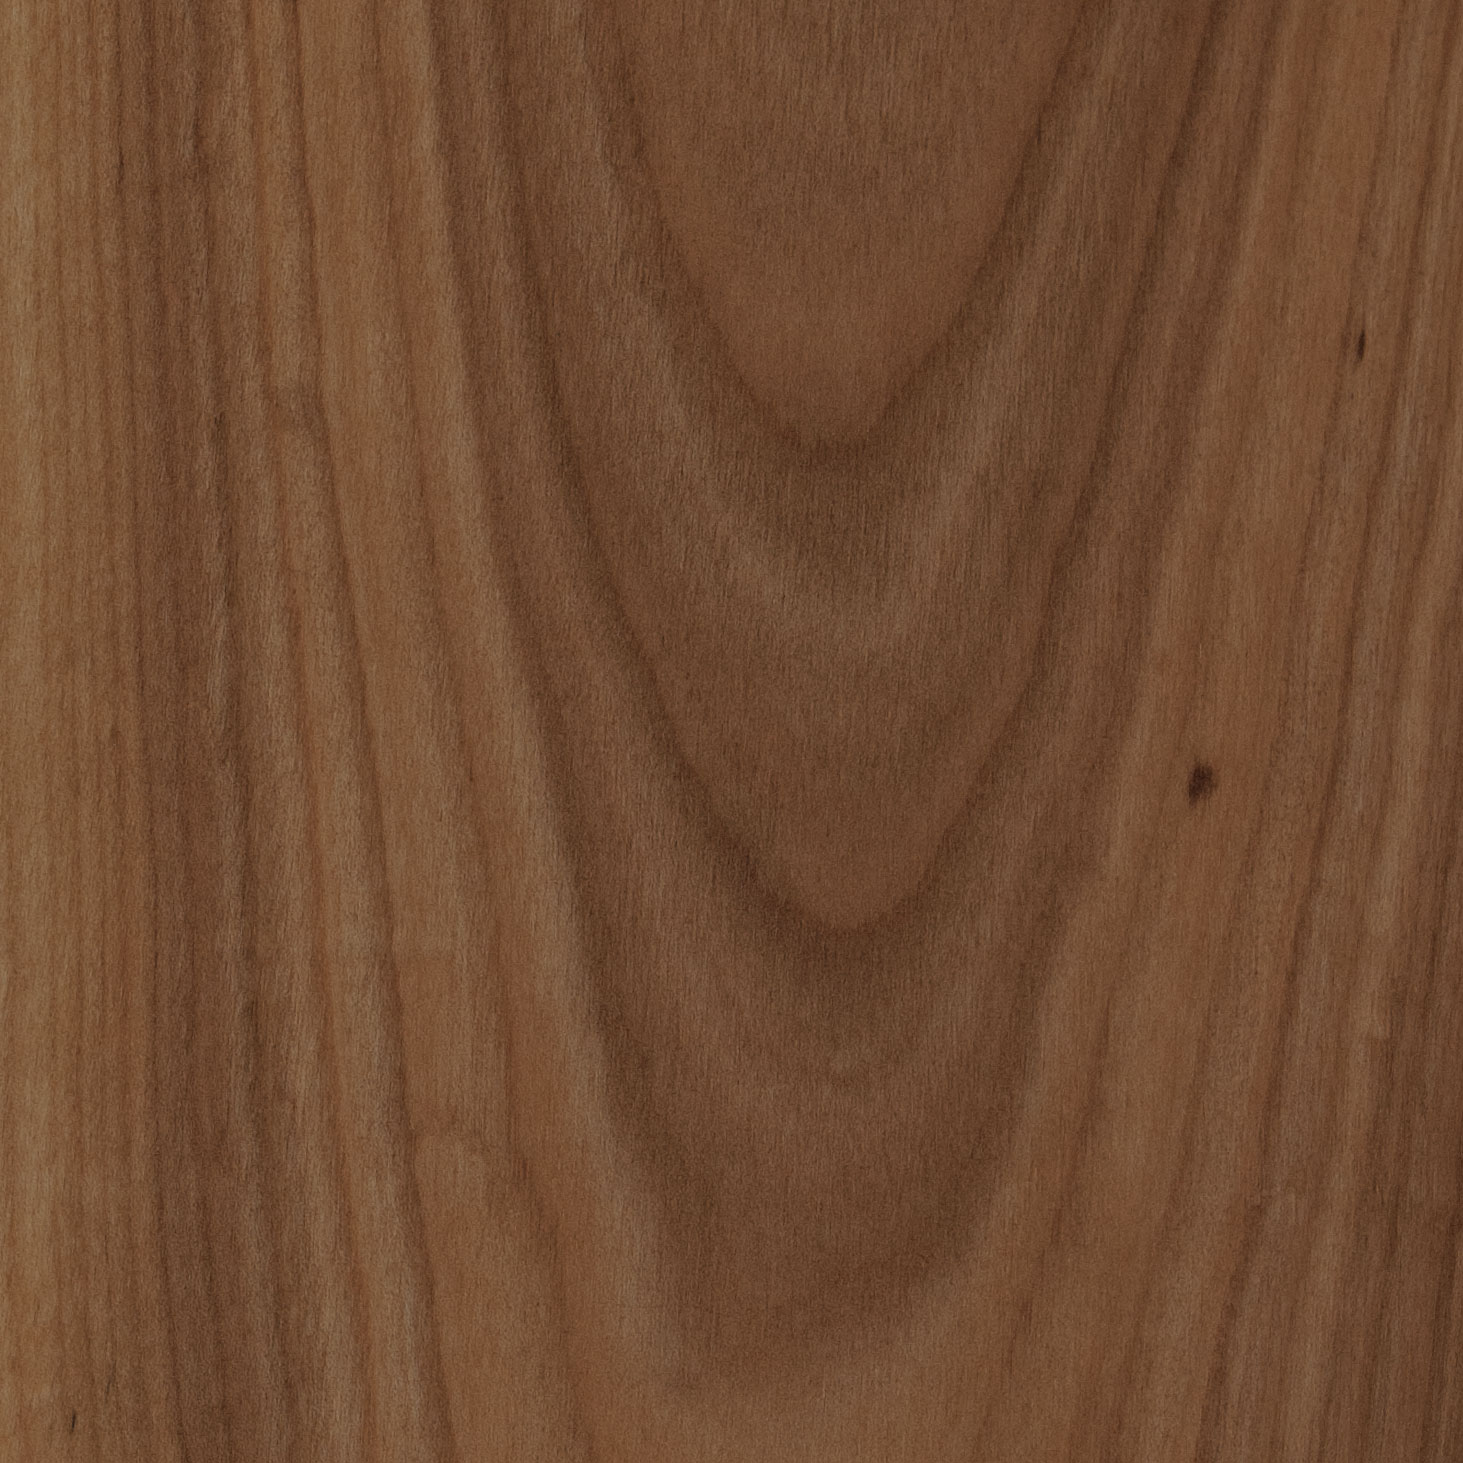 Element7-wide-plank-samples-american-cherry-IMG_9151_CMYK